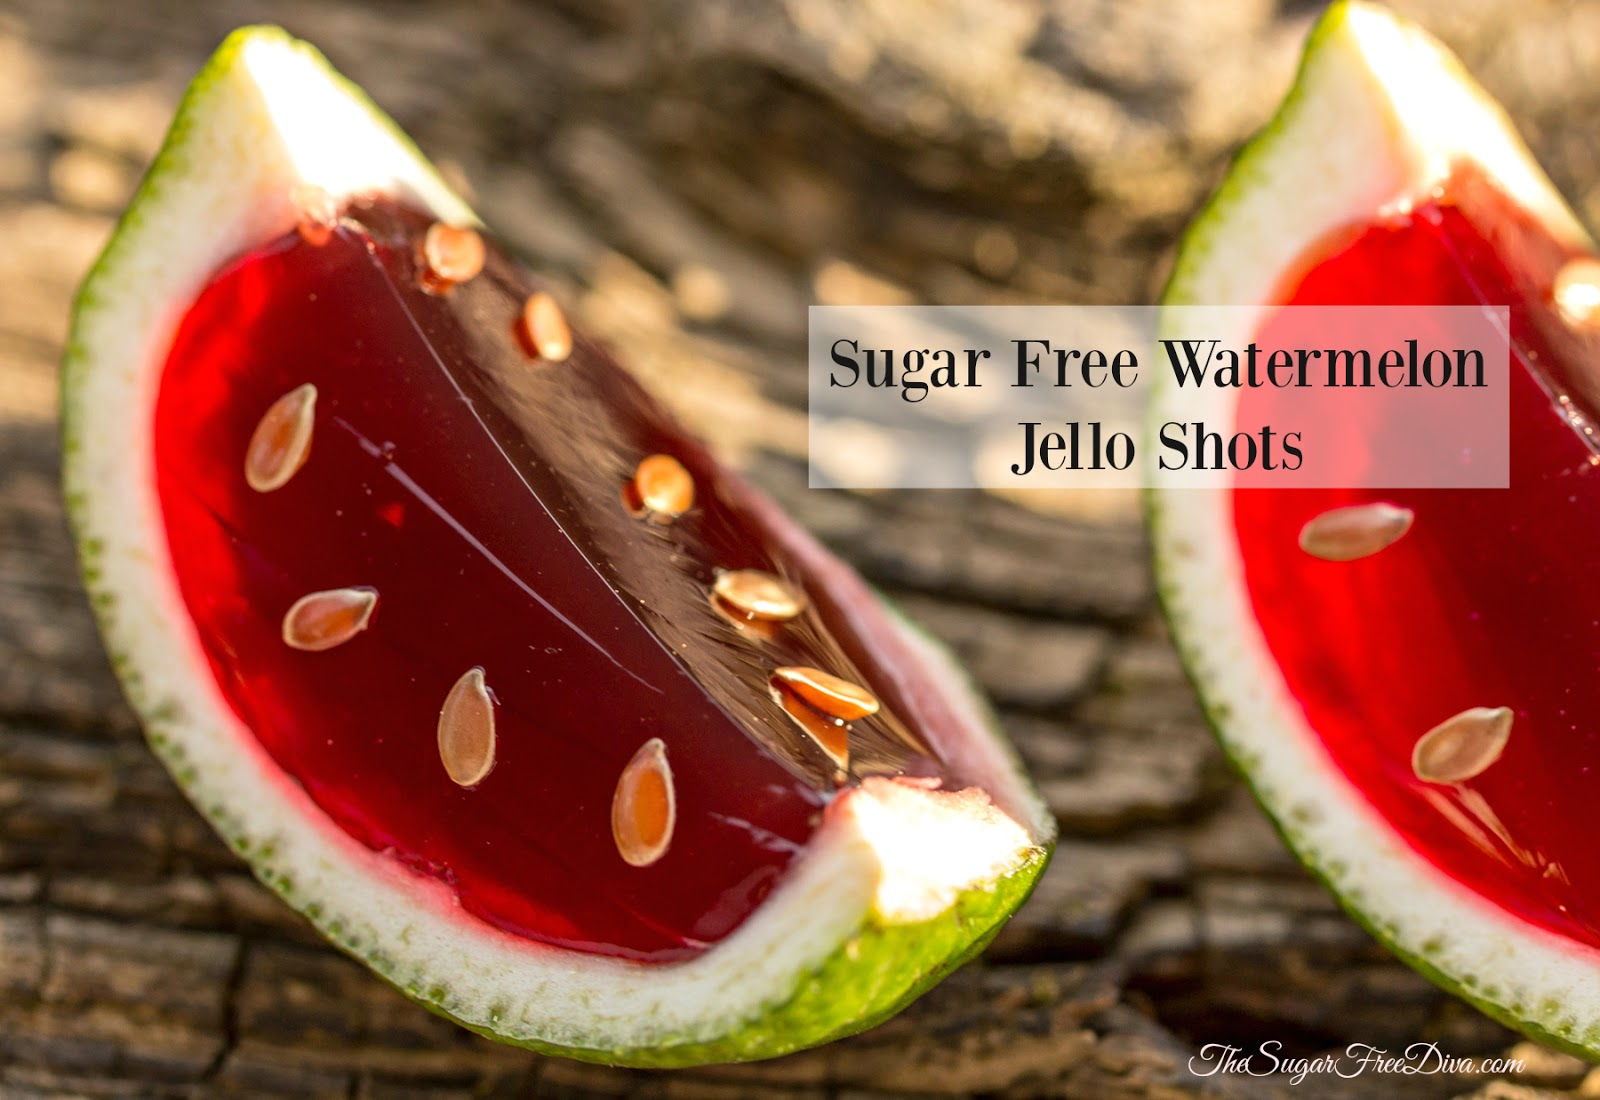 Sugar Free Watermelon Jello Shots